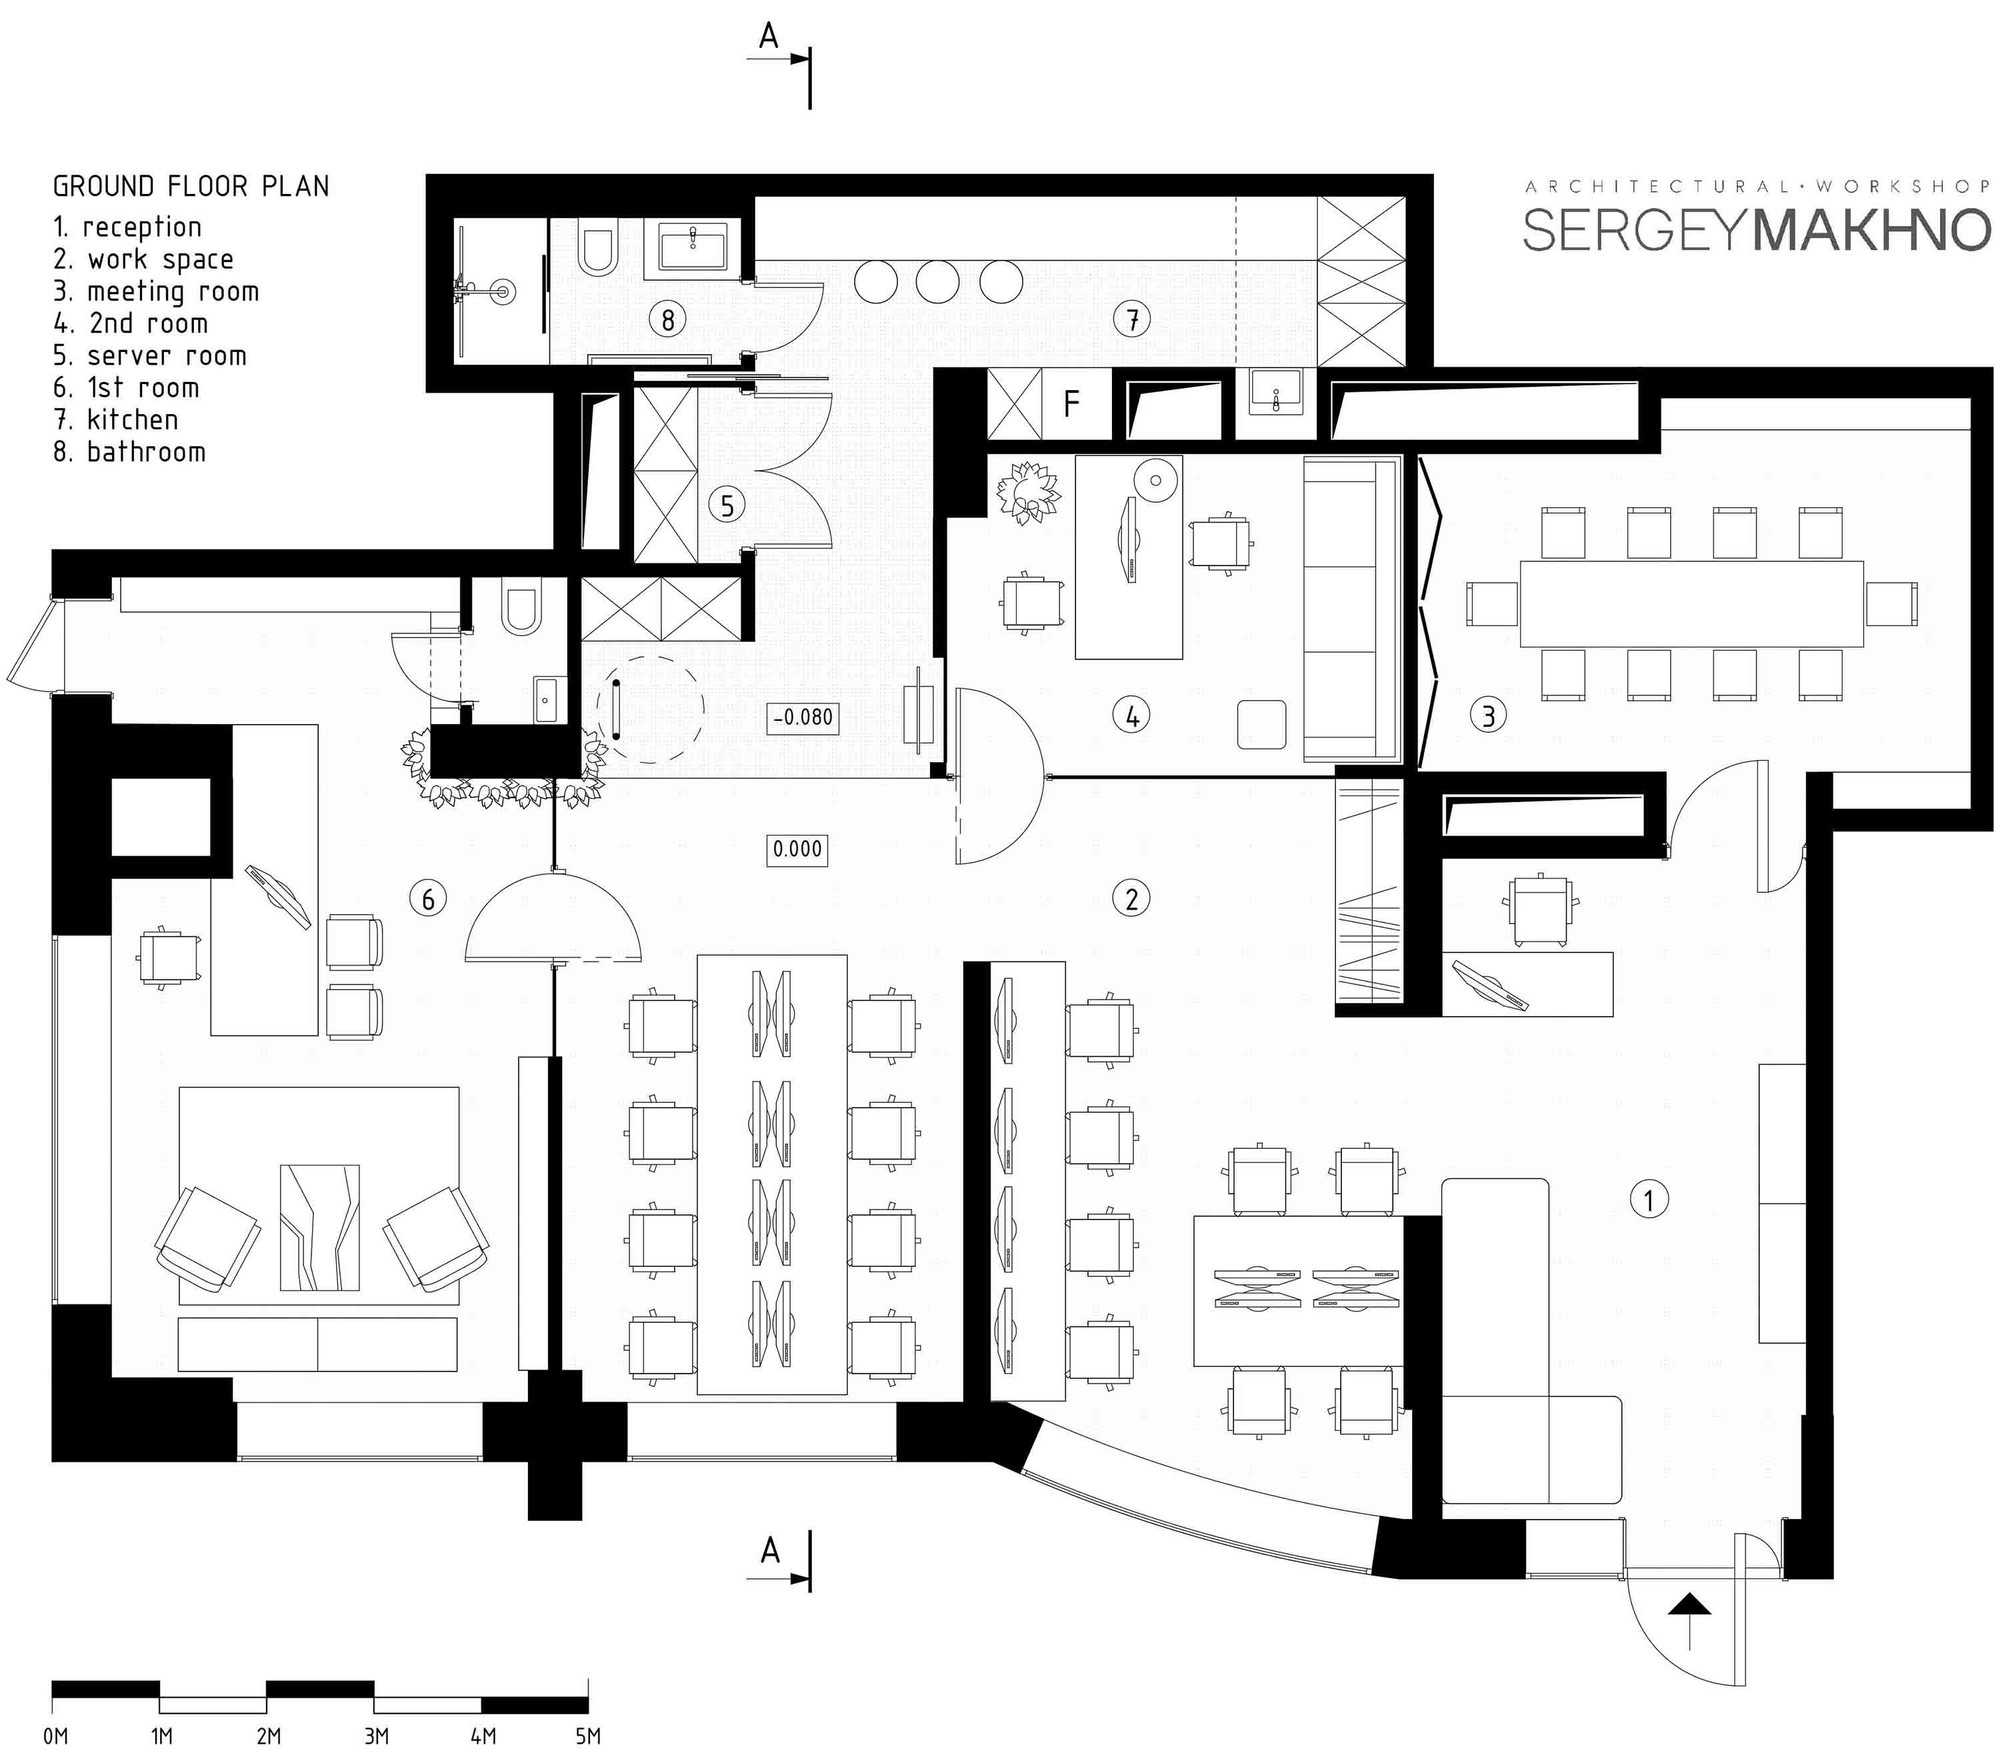 Shop House Plans together with Landing Zone Duck Wall Decal P86474 furthermore Inspiring Bi Level Floor Plans 12 Photo likewise 7ae6d8863c4008da 2 Bedroom House Plans Simple House Plans in addition 100 Lake House Floor Plans Narrow Lot Best 25 Small House B9dd3af9cbcbd9a1. on cabin ideas